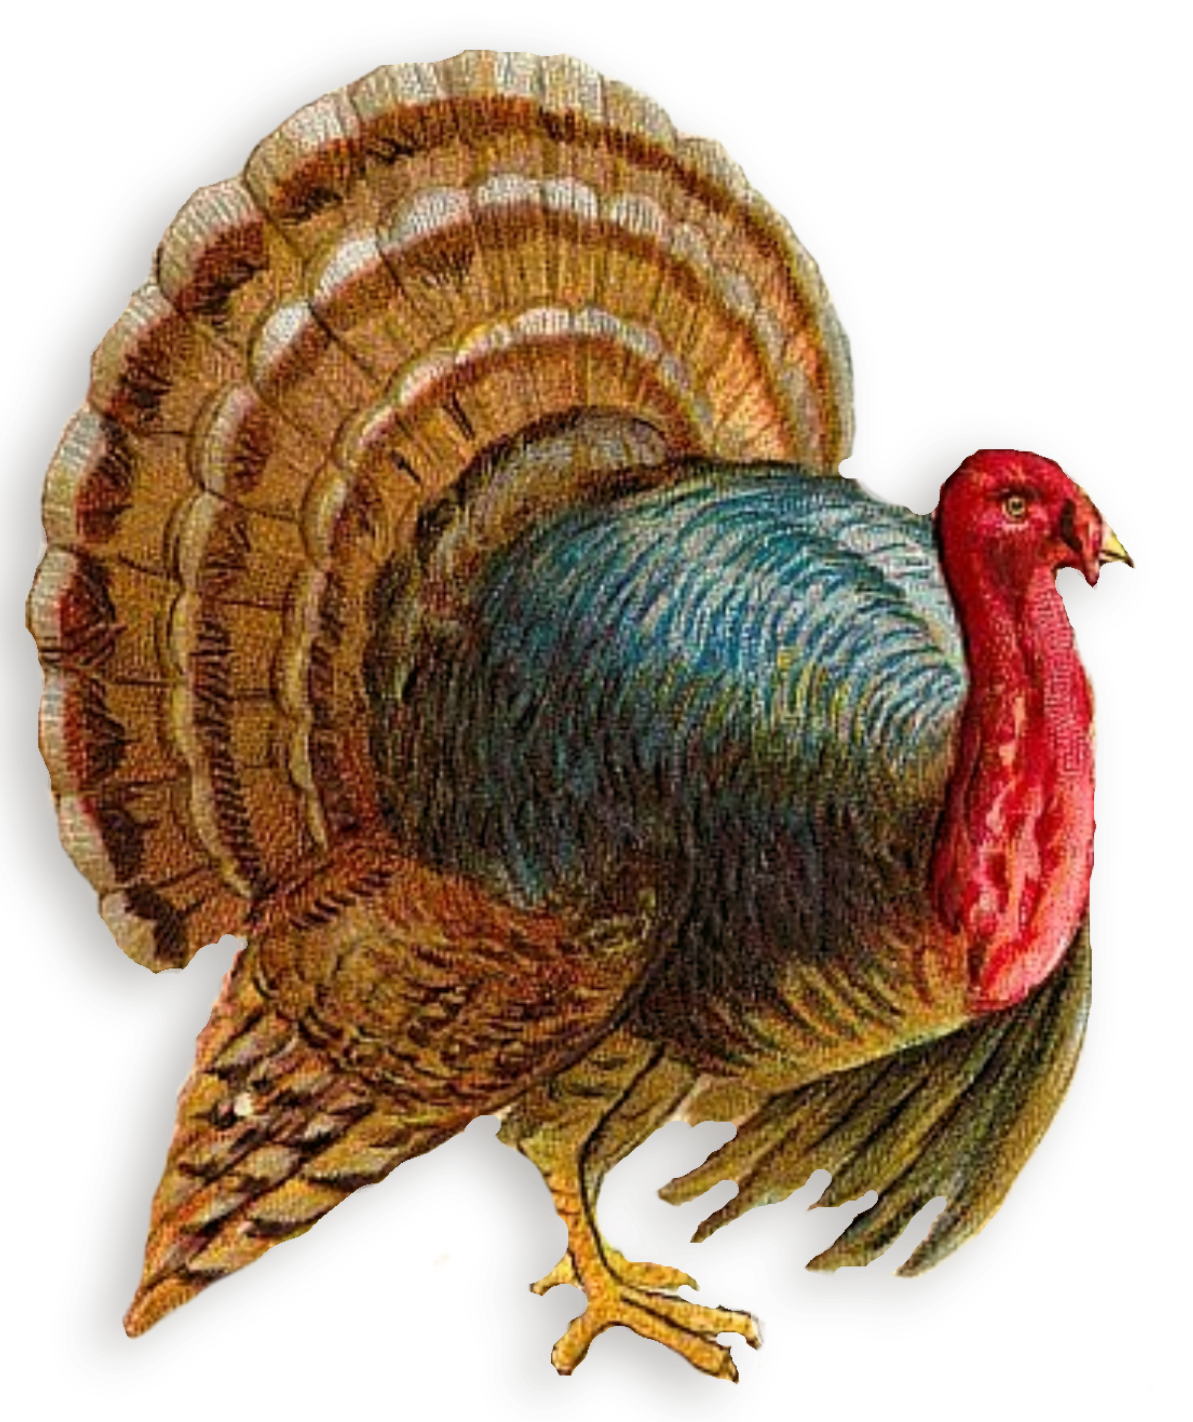 Png clipart best free. Turkey clip art transparent background clip art royalty free stock